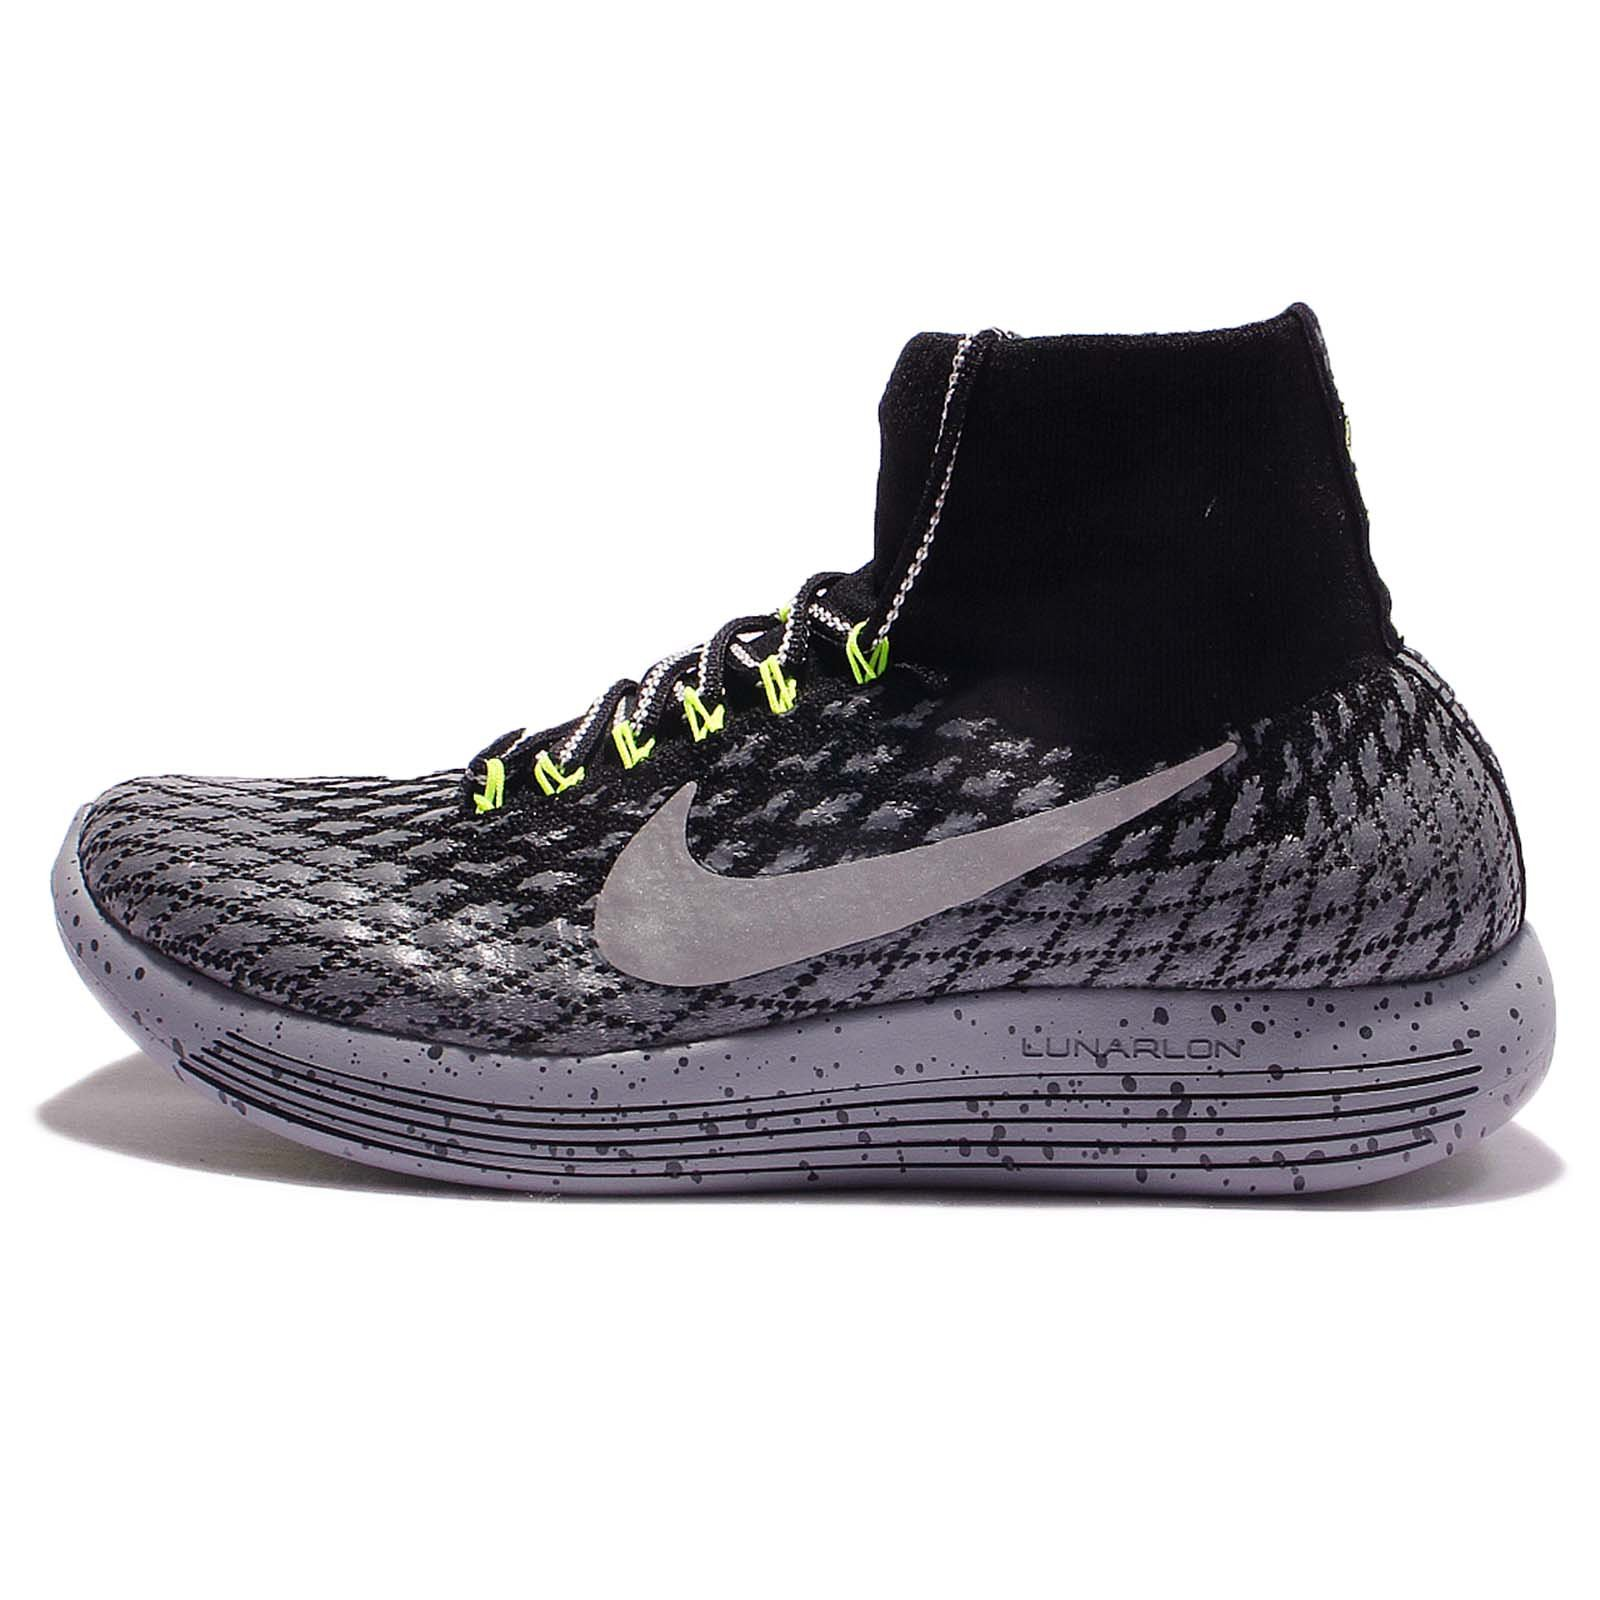 buy popular e2edd 399aa Galleon - Nike Womens Lunarepic Flyknit Shield Running Trainers 849665  Sneakers Shoes (UK 6.5 US 9 EU 40.5, Black Metallic Silver 001)